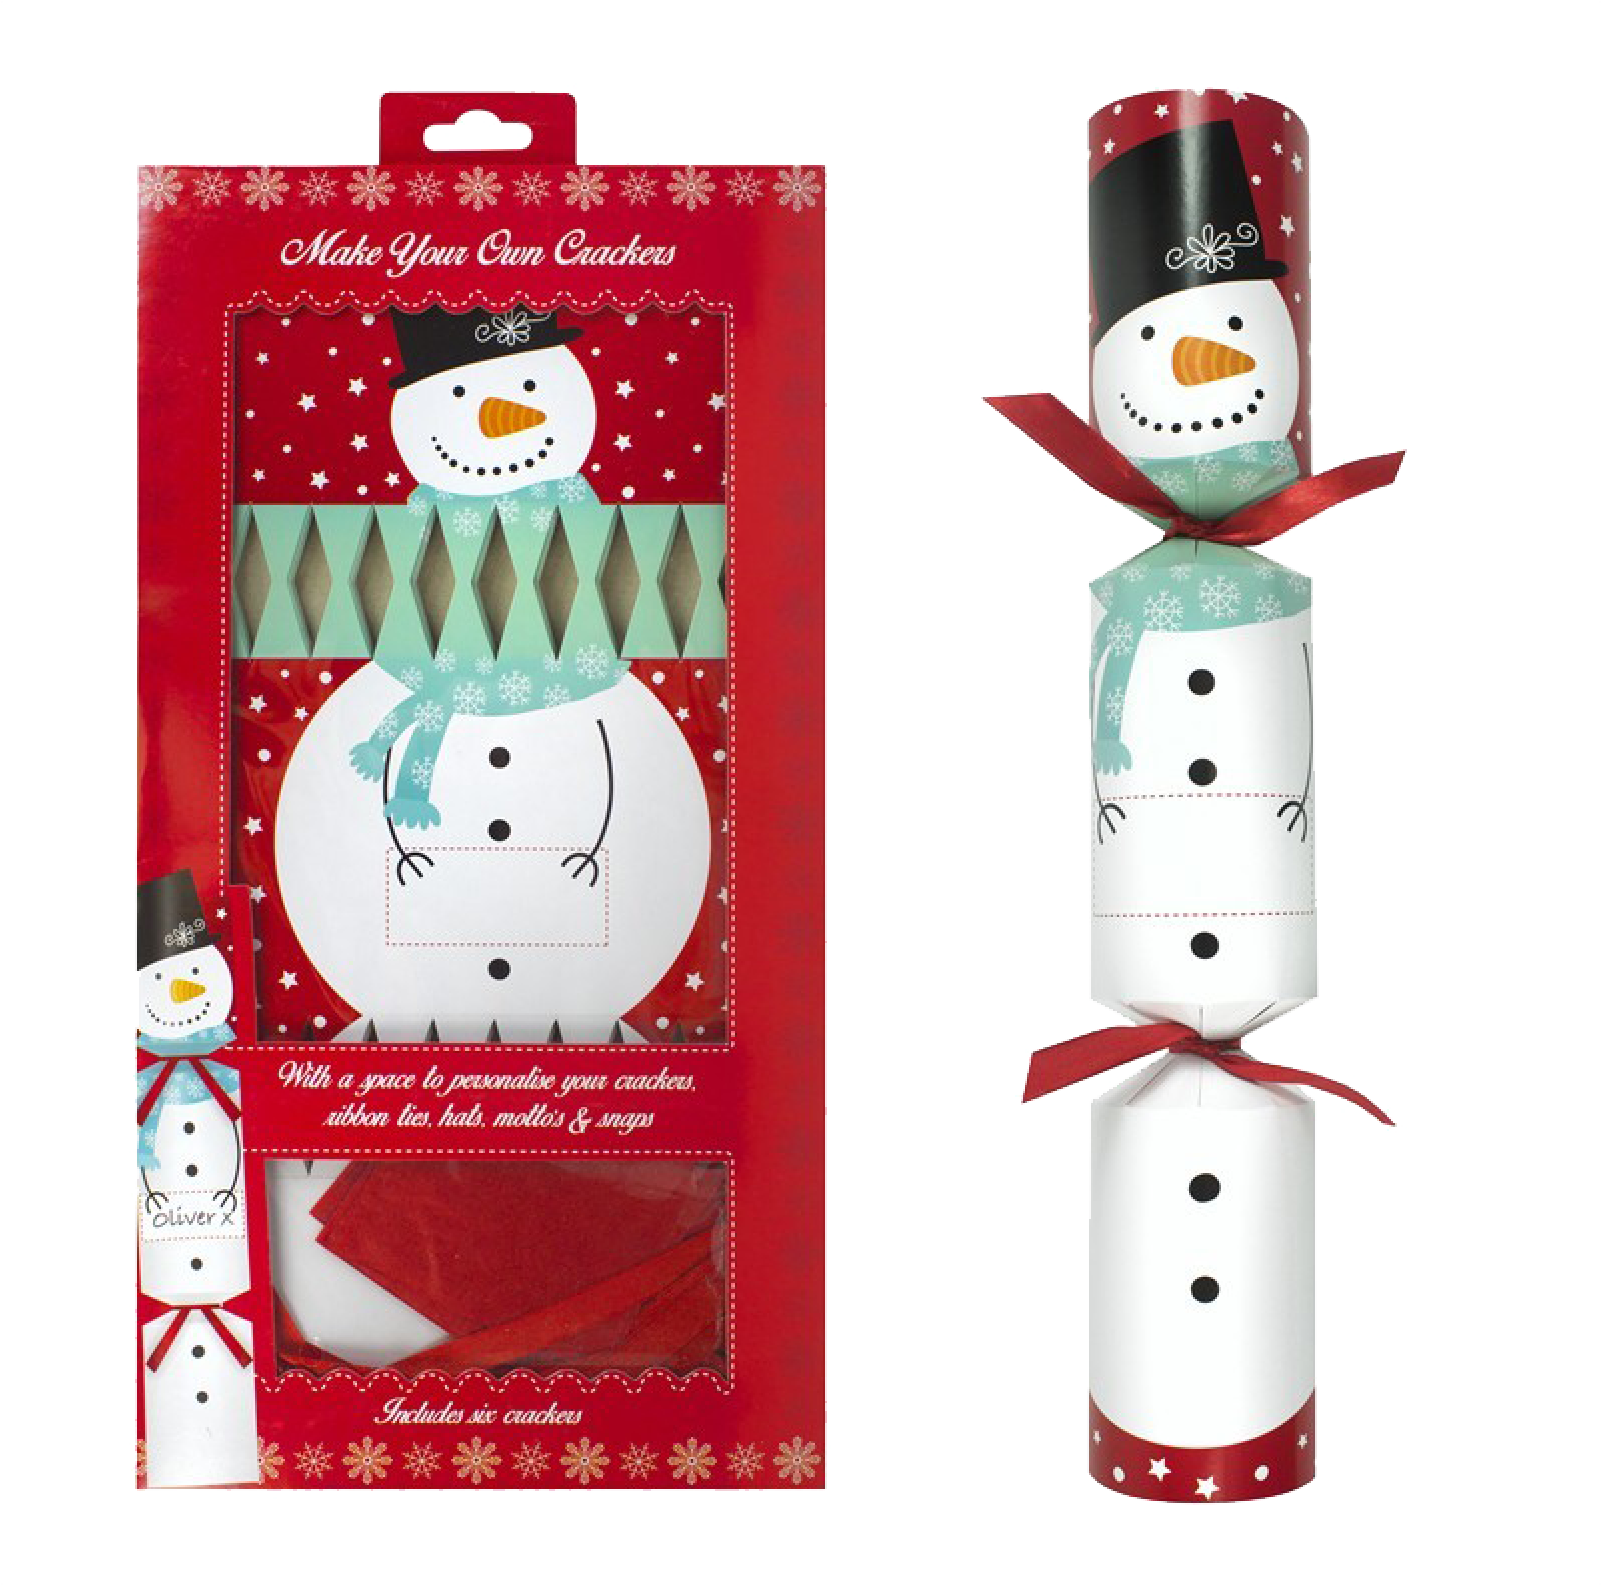 Christmas Crackers Png.Download Hd Make Your Own Elf Christmas Crackers Transparent